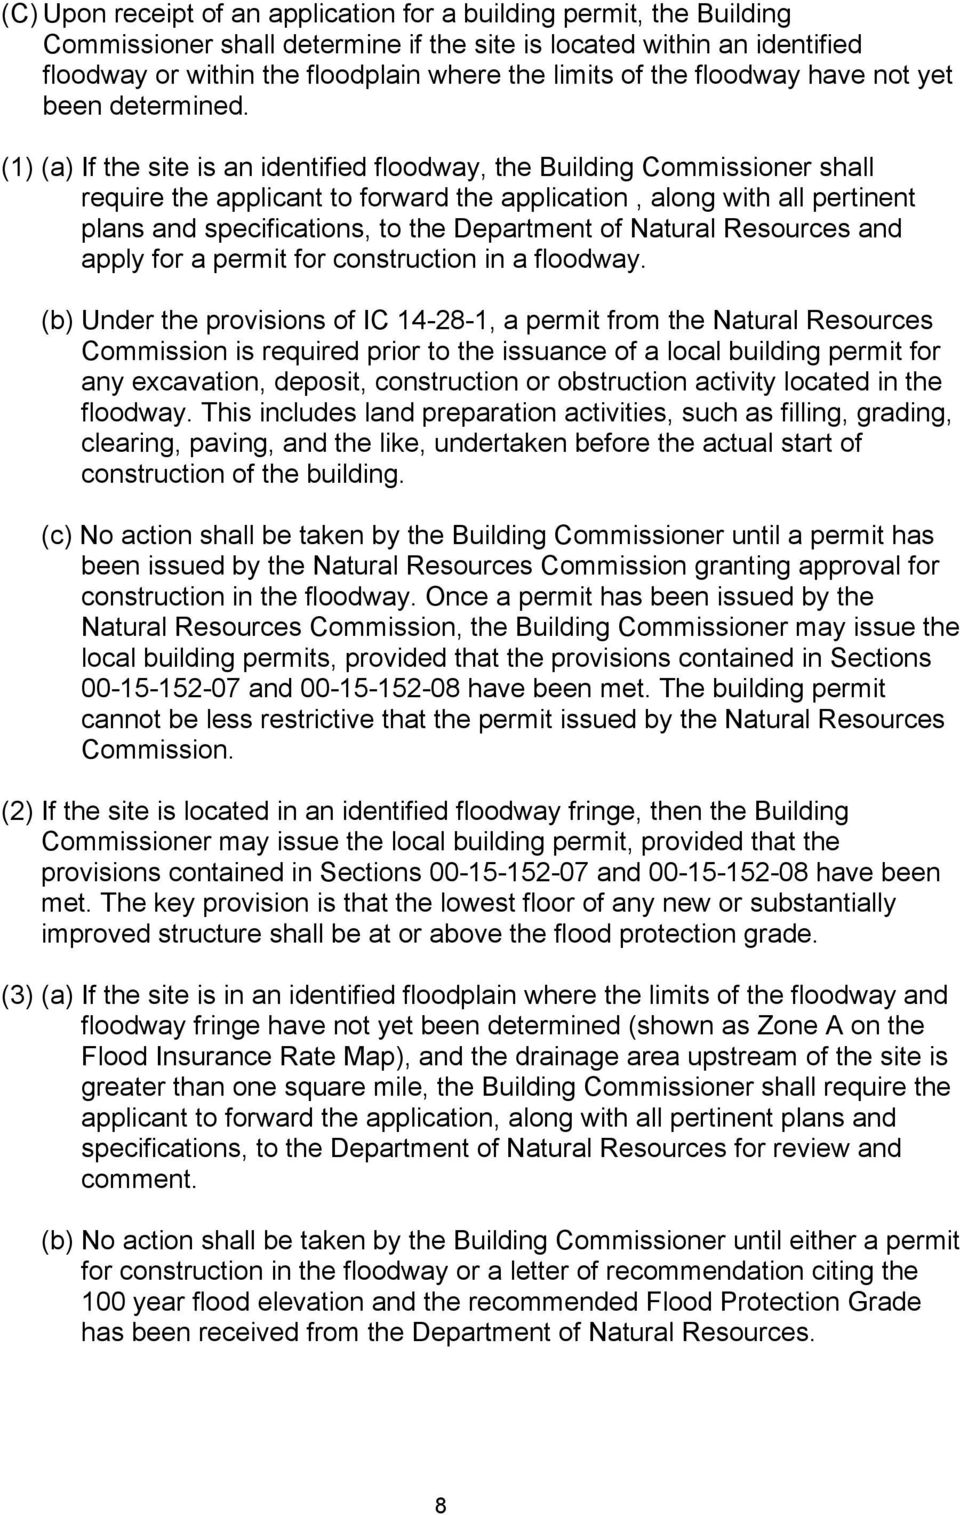 (1) (a) If the site is an identified floodway, the Building Commissioner shall require the applicant to forward the application, along with all pertinent plans and specifications, to the Department